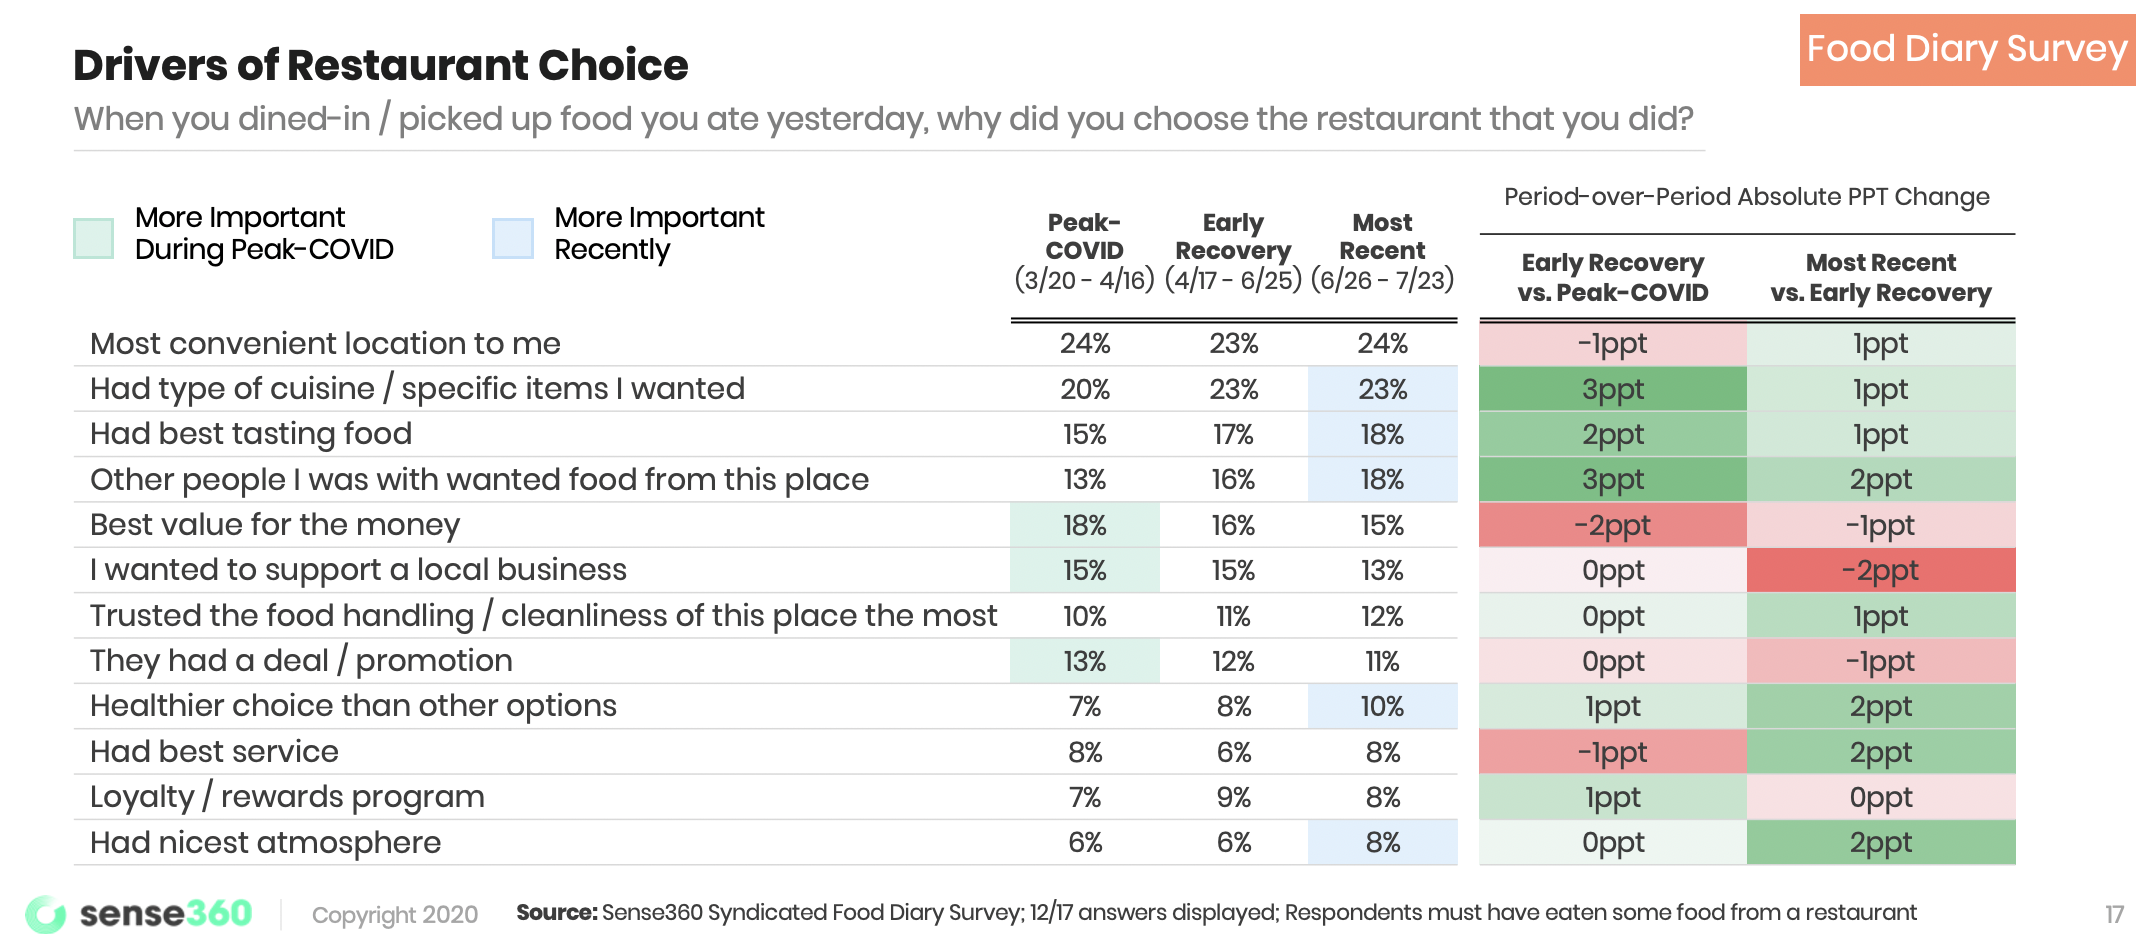 drivers-of-restaurant-choice-821